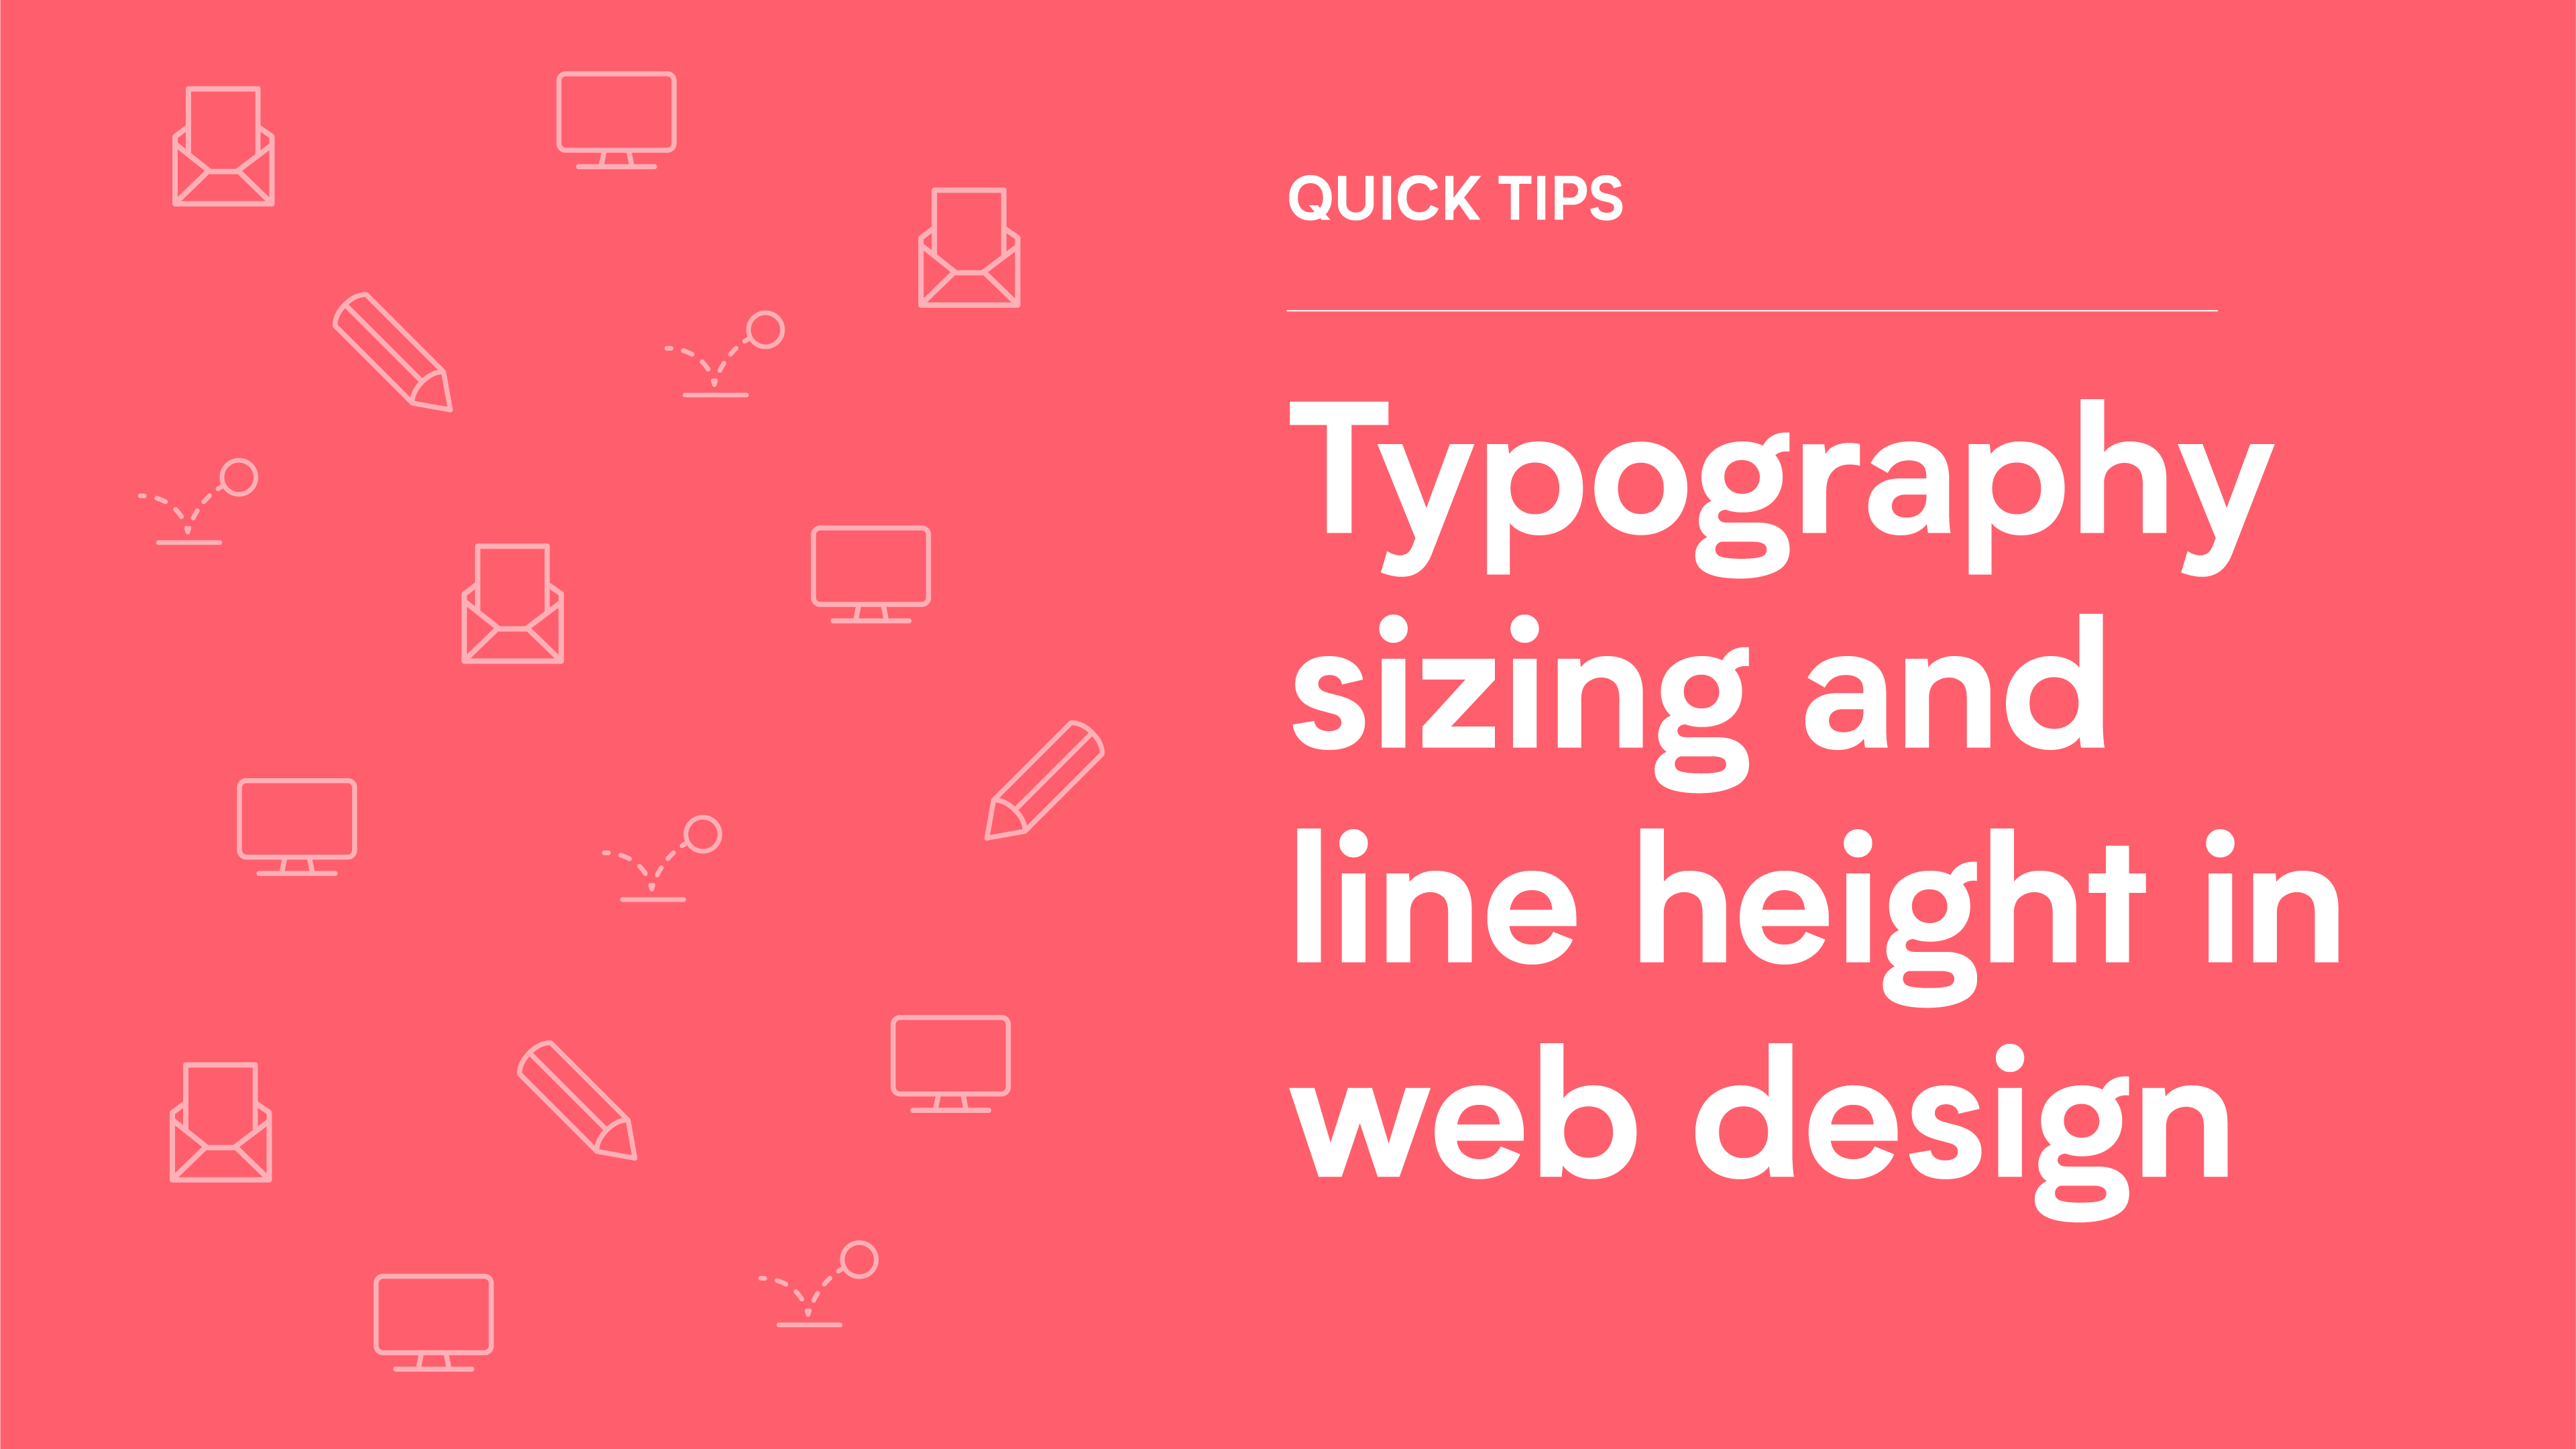 typography sizing and line height in web design graphic